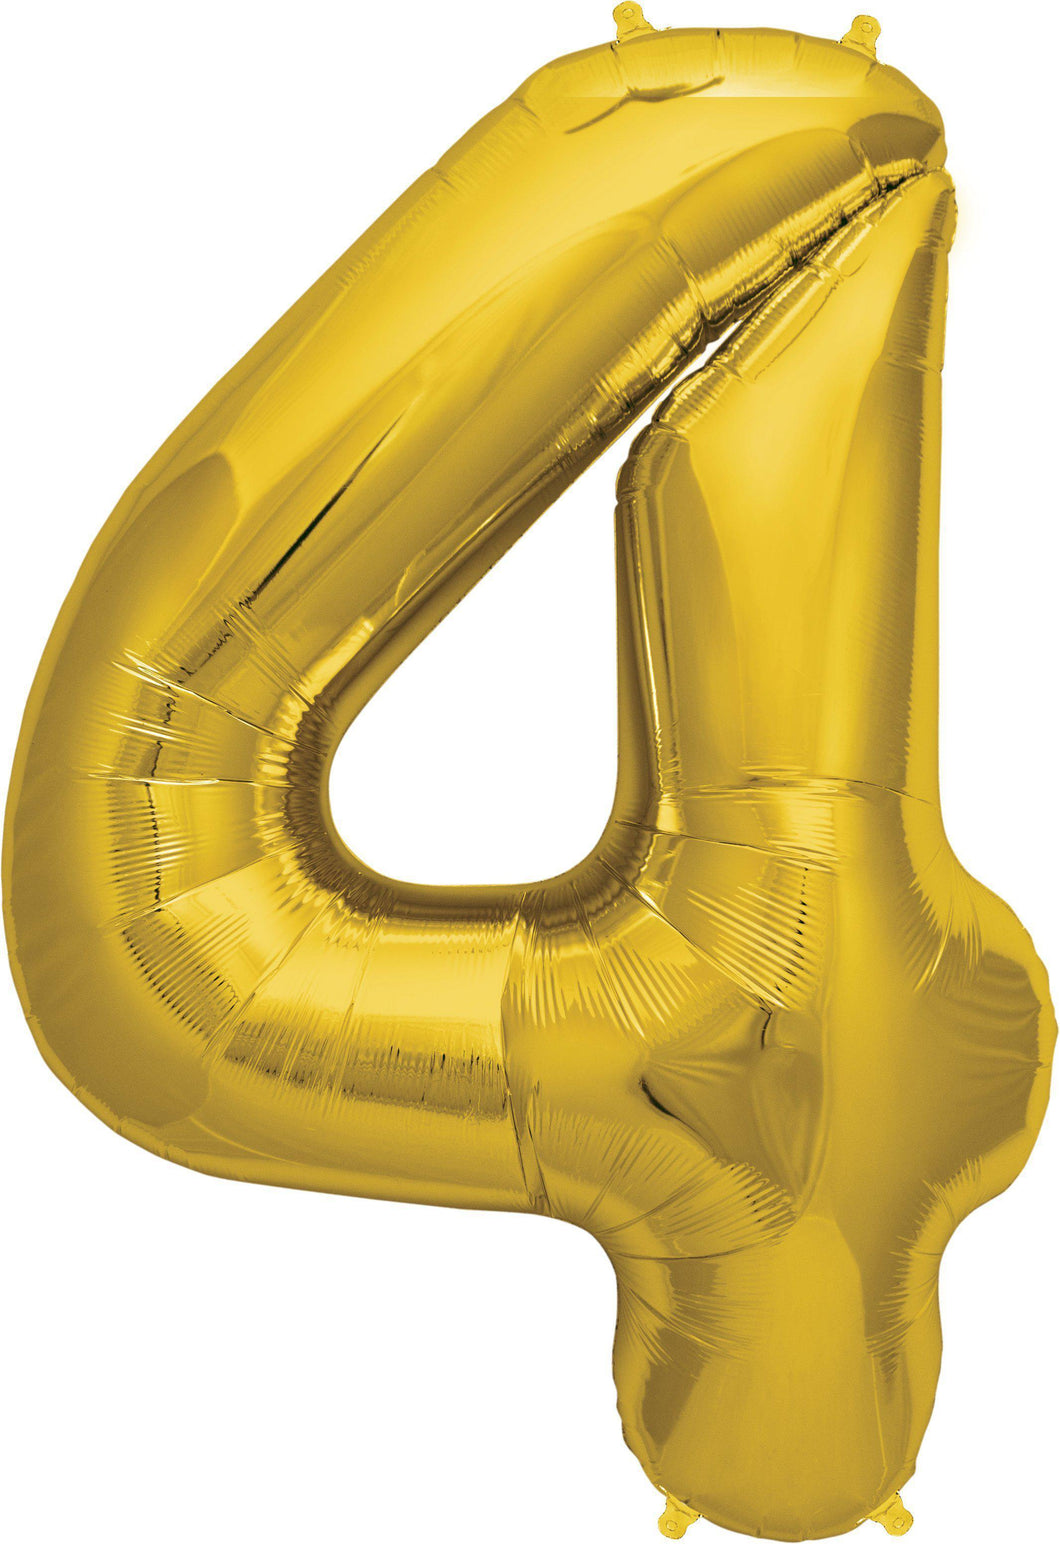 SALE 83cm Jumbo Number 4 Gold Foil Balloon-Party Love